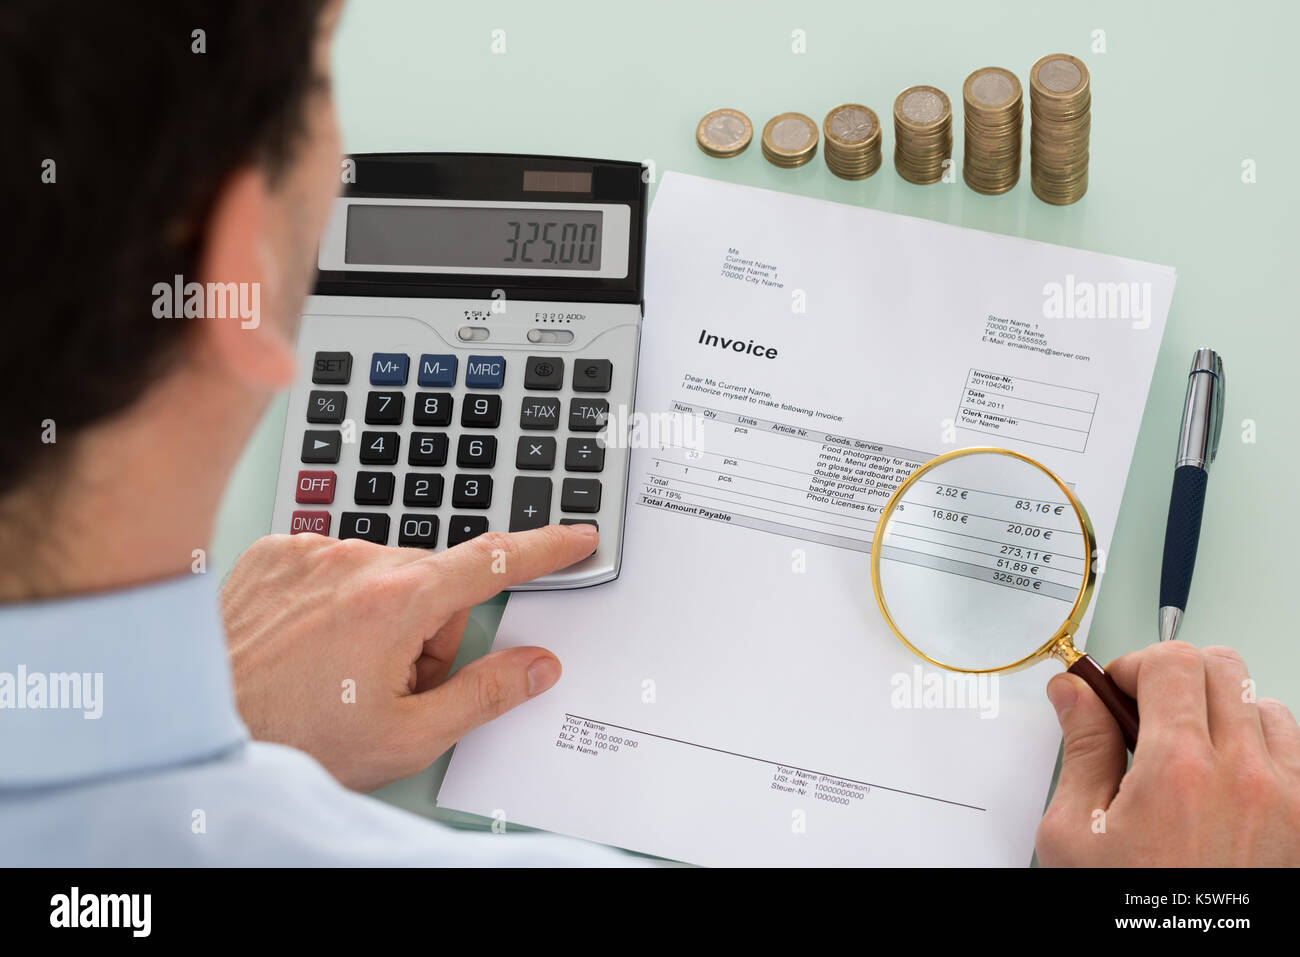 Photo Of Auditor Examining Invoice With Magnifying Glass - Stock Image